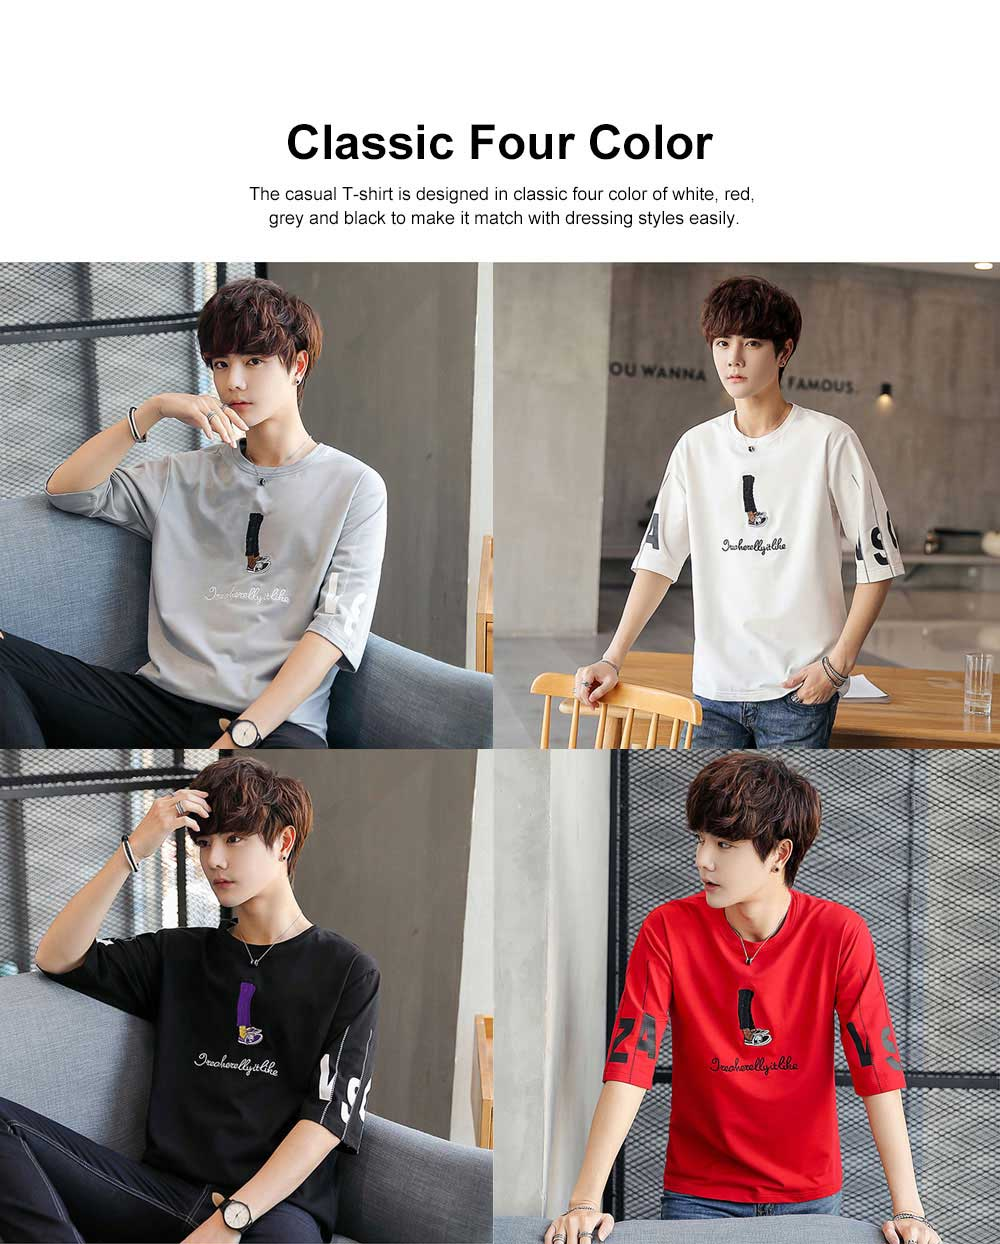 Short Sleeve Round Collar T-shirt for Male Wear Spring Summer, Loose Version Casual Style T-shirt with Cartoon Pattern, Students Men's Top 1